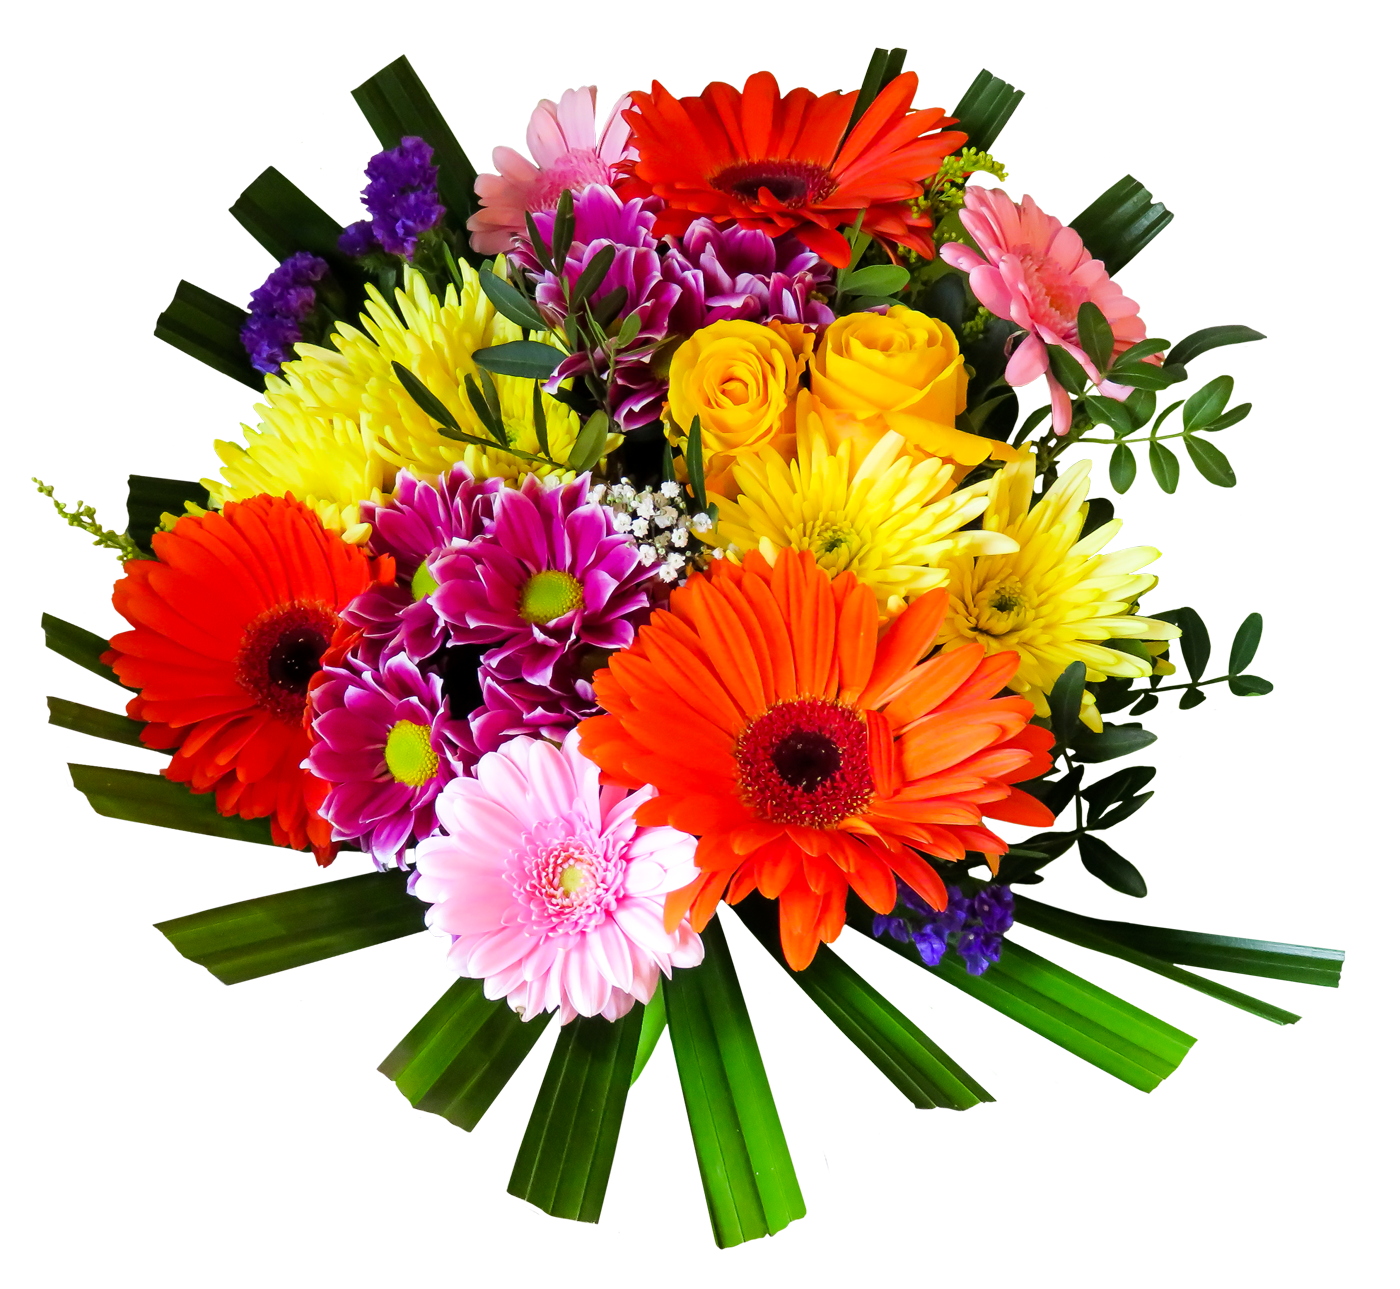 Pin by Hopeless on nature Flower bouquet png, Flower png